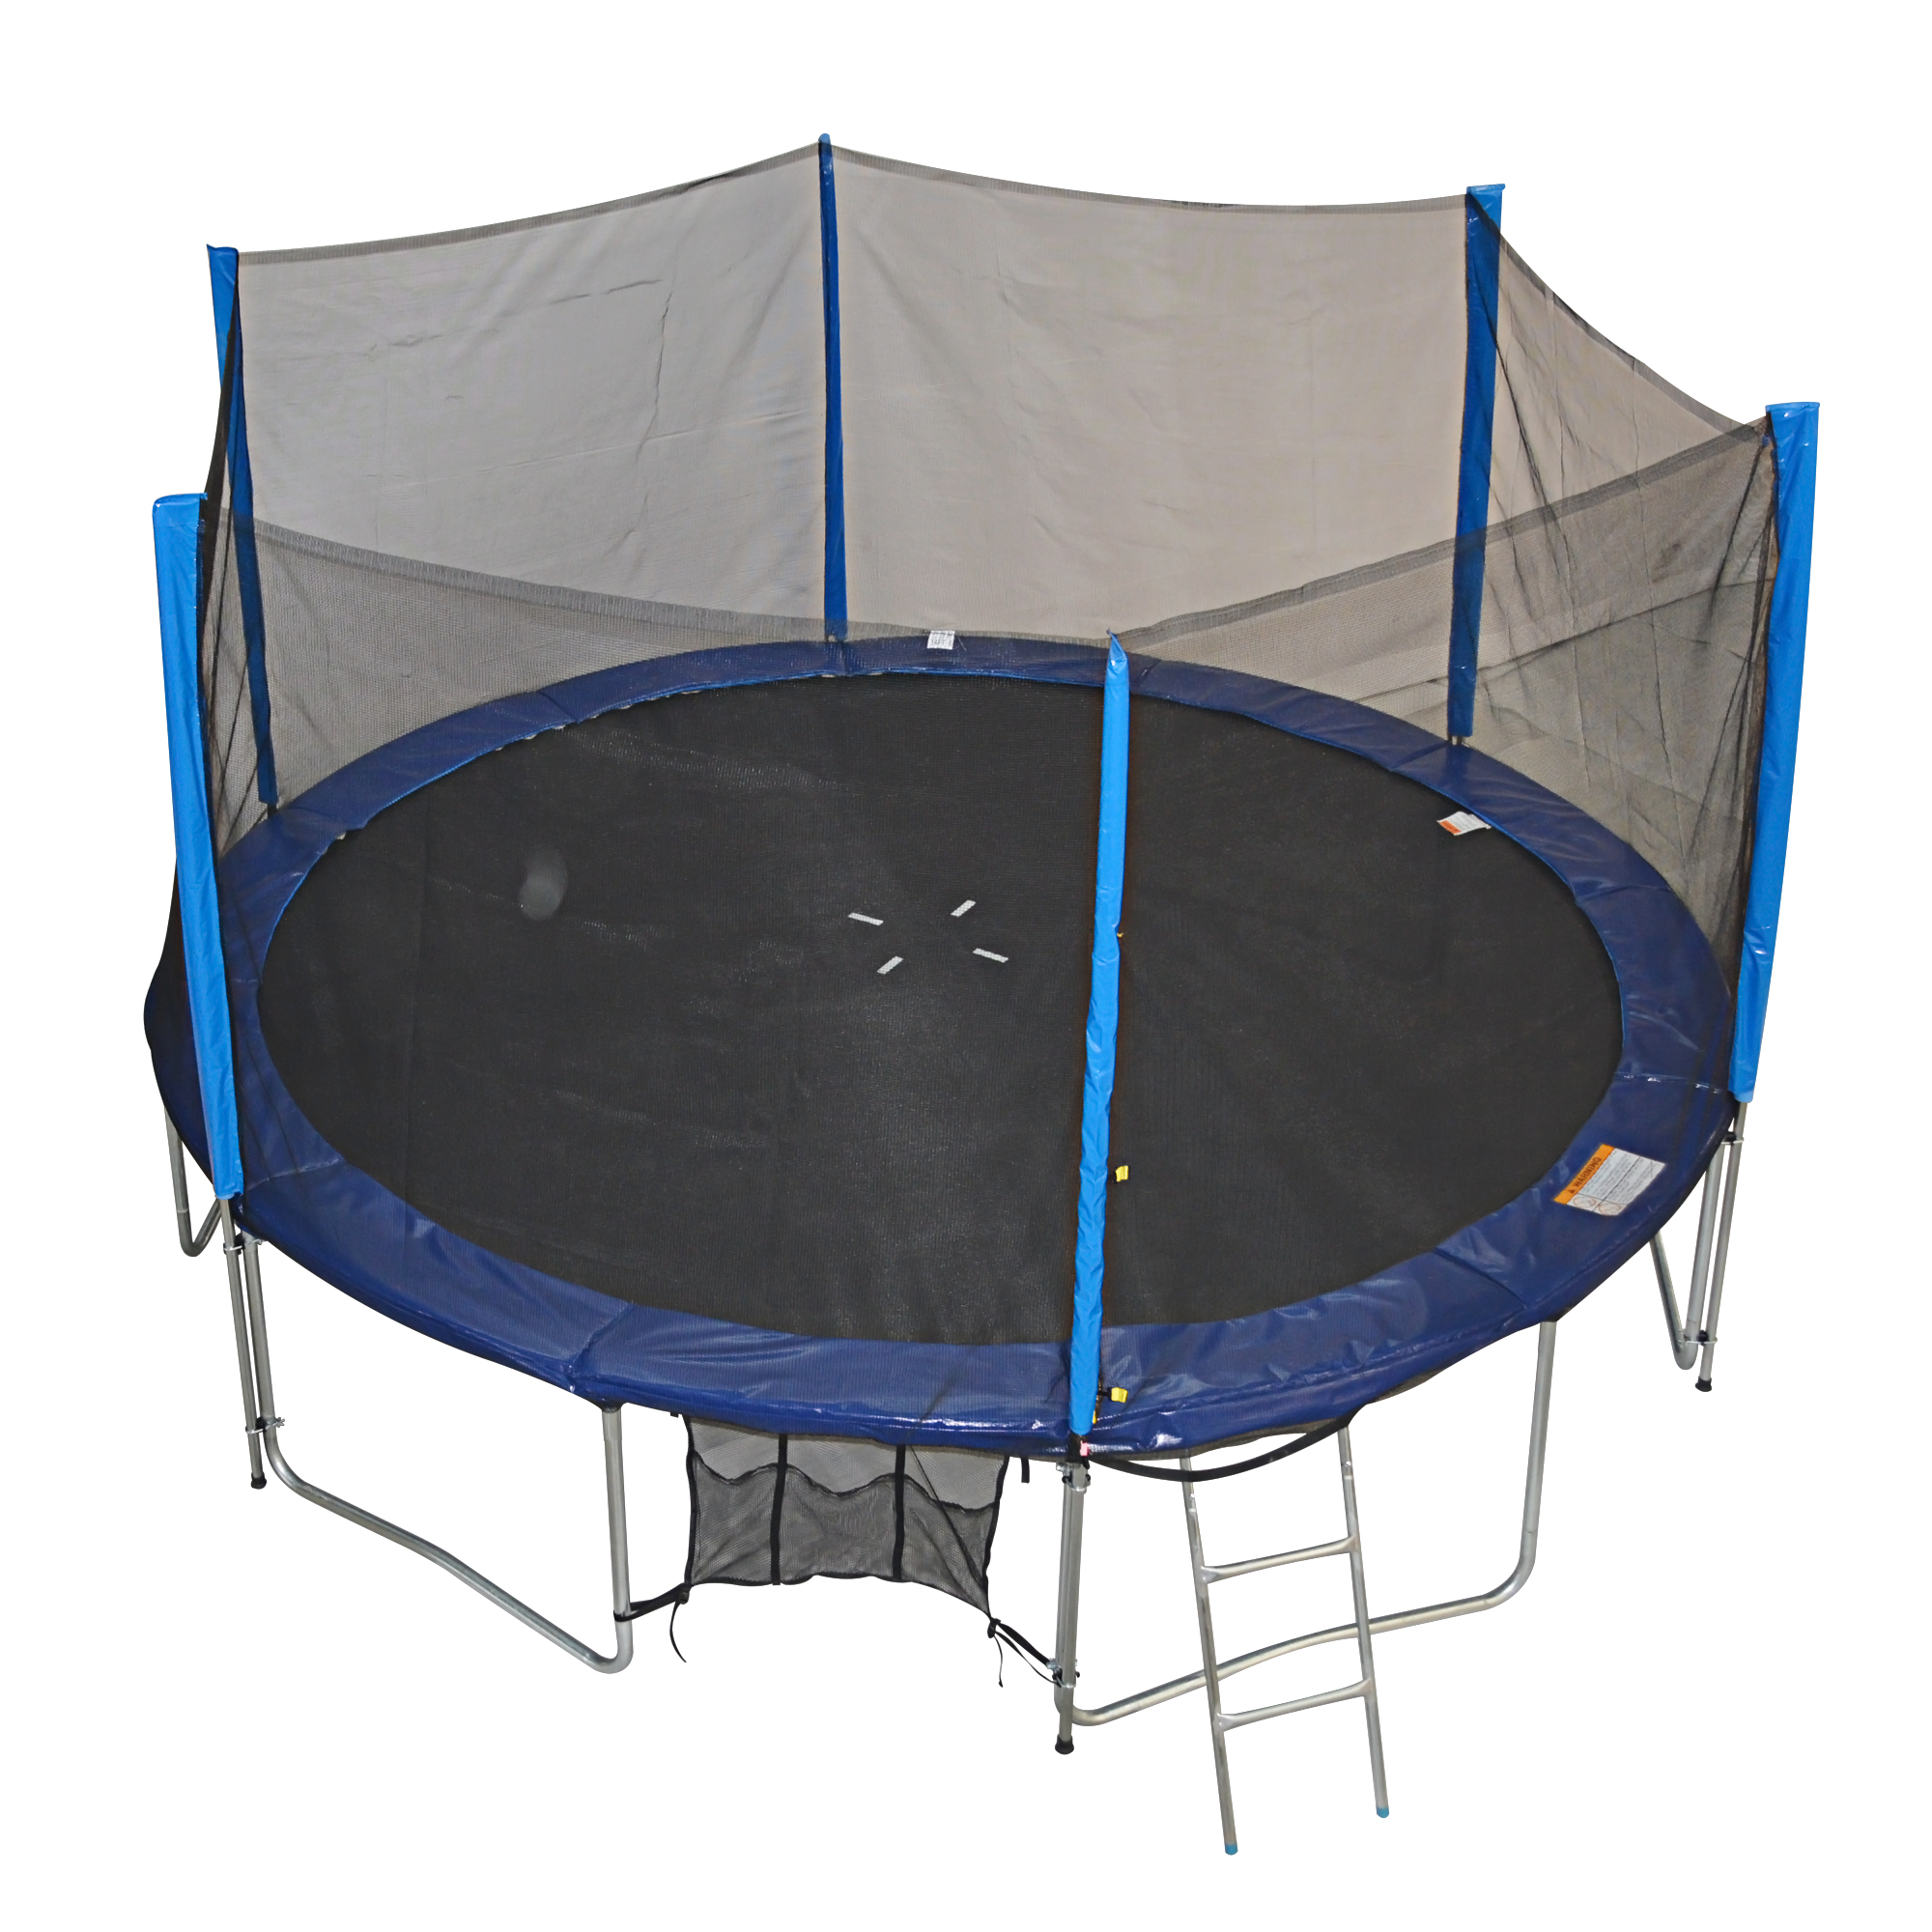 New Heavy Duty Trampoline 14 Ft With Ladder Safety Net: ZUPAPA TUV APPROVED 14FT HEAVY DUTY TRAMPOLINE SAFETY PAD